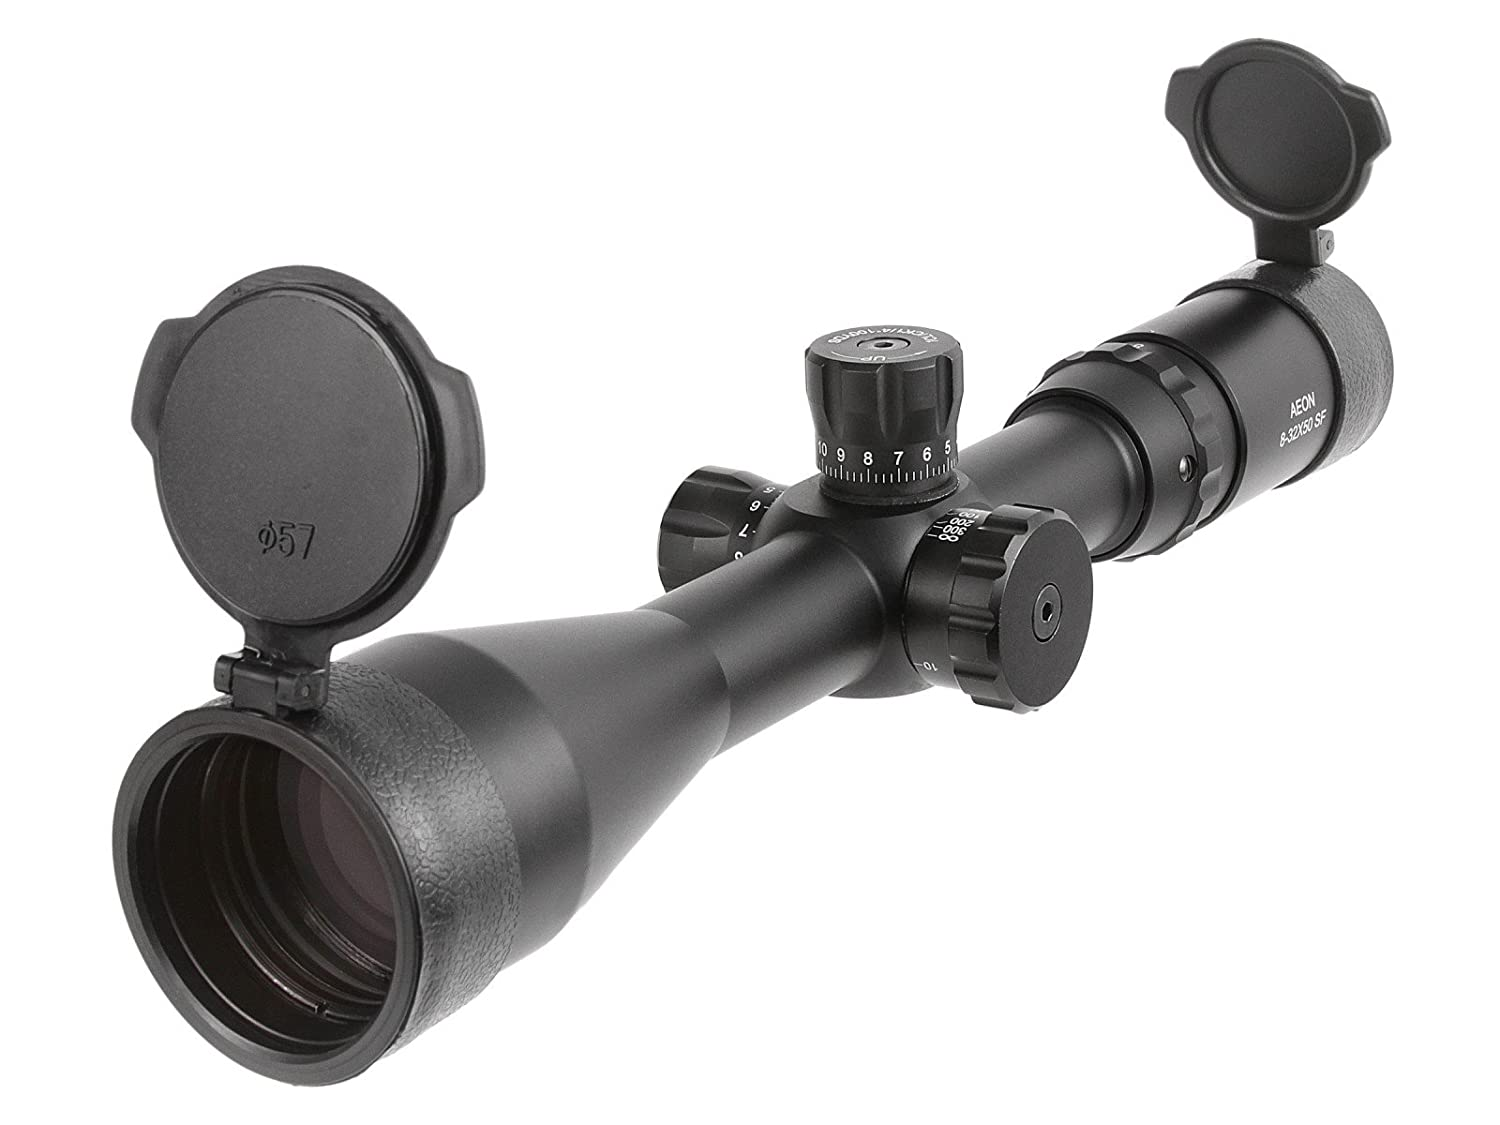 Aeon 8-32×50 AO Classic Rifle Scope, Trajectory Reticle, 1 4 MOA, 30mm Tube